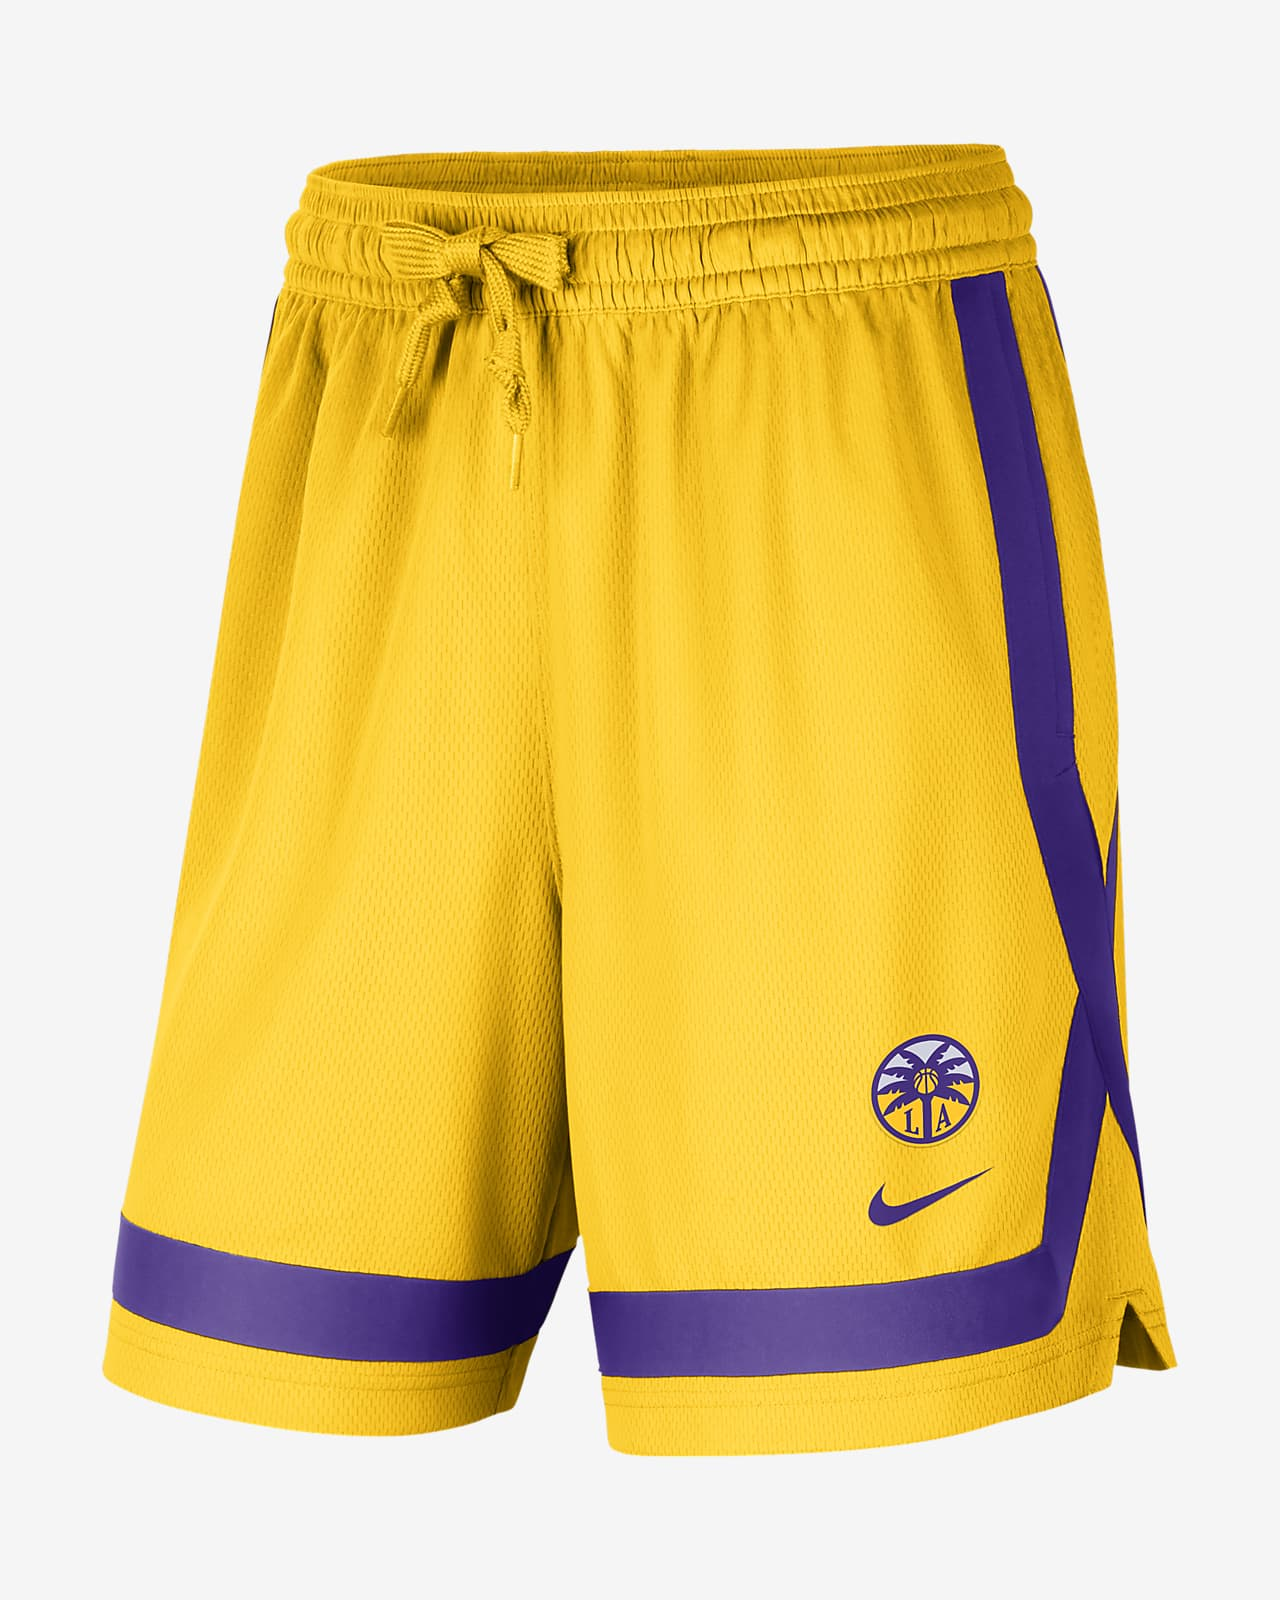 Los Angeles Sparks Women's Nike WNBA Practice Shorts